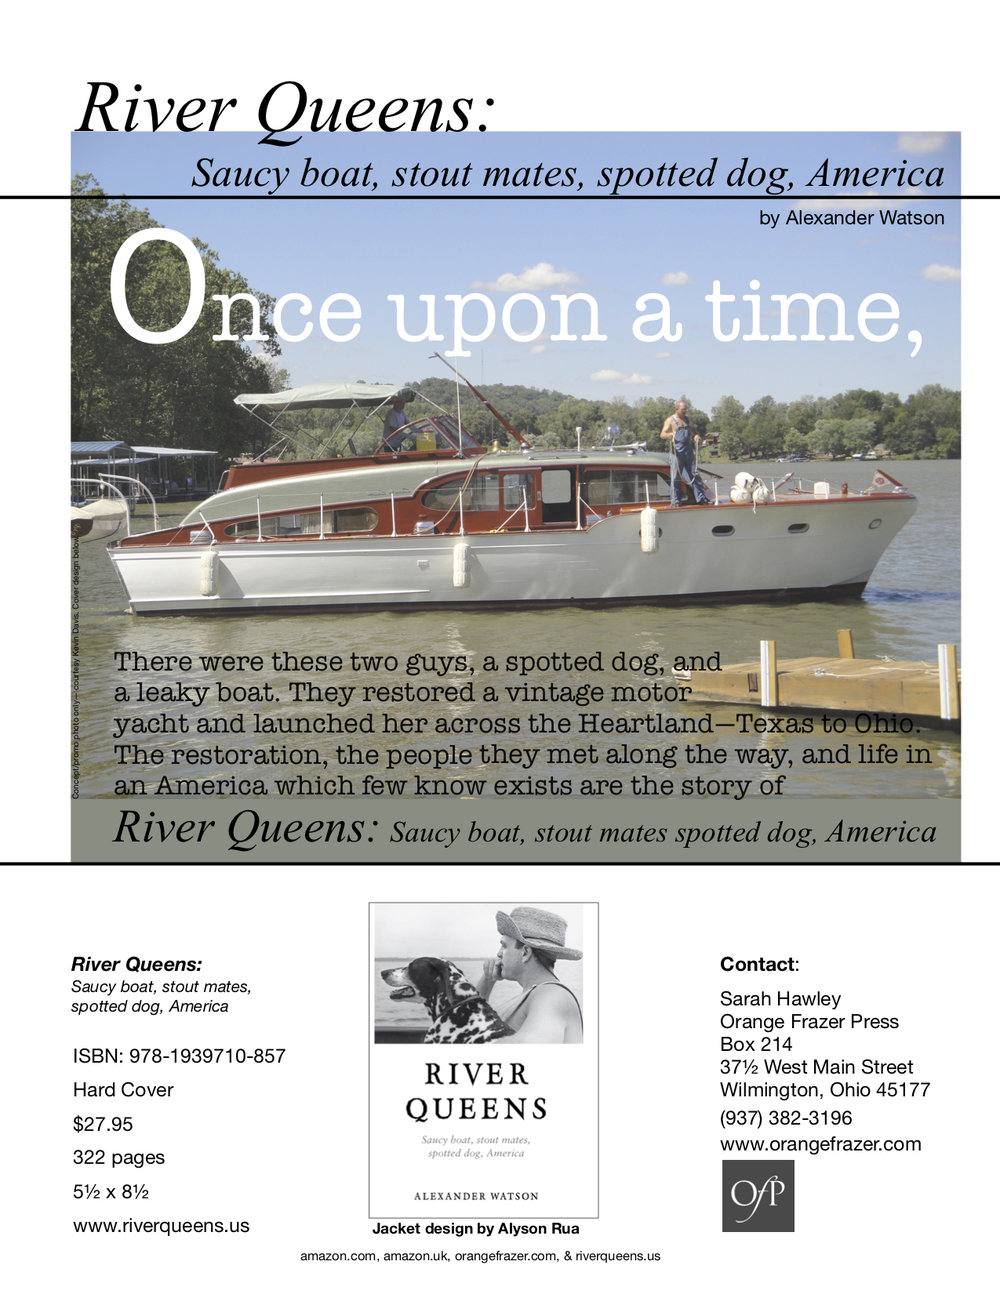 Sell sheet  for  River Queens: Saucy boat, stout mates, spotted dog, America